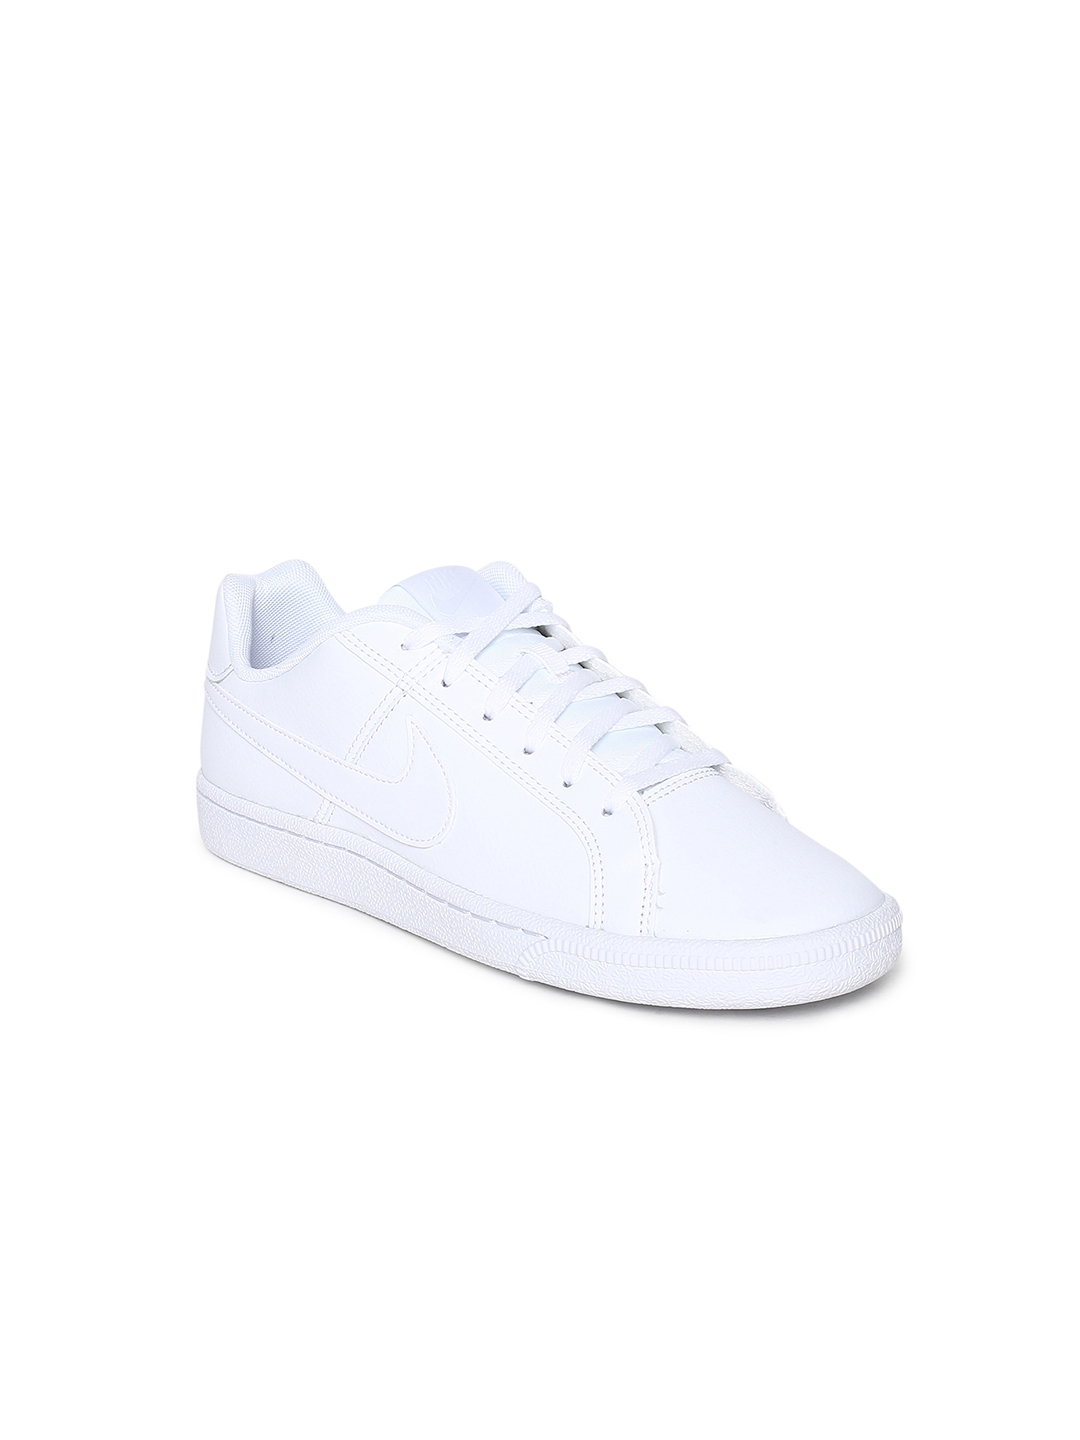 31068f19201dff Buy Nike Boys White Court Royale (GS) Sneakers - Casual Shoes for ...